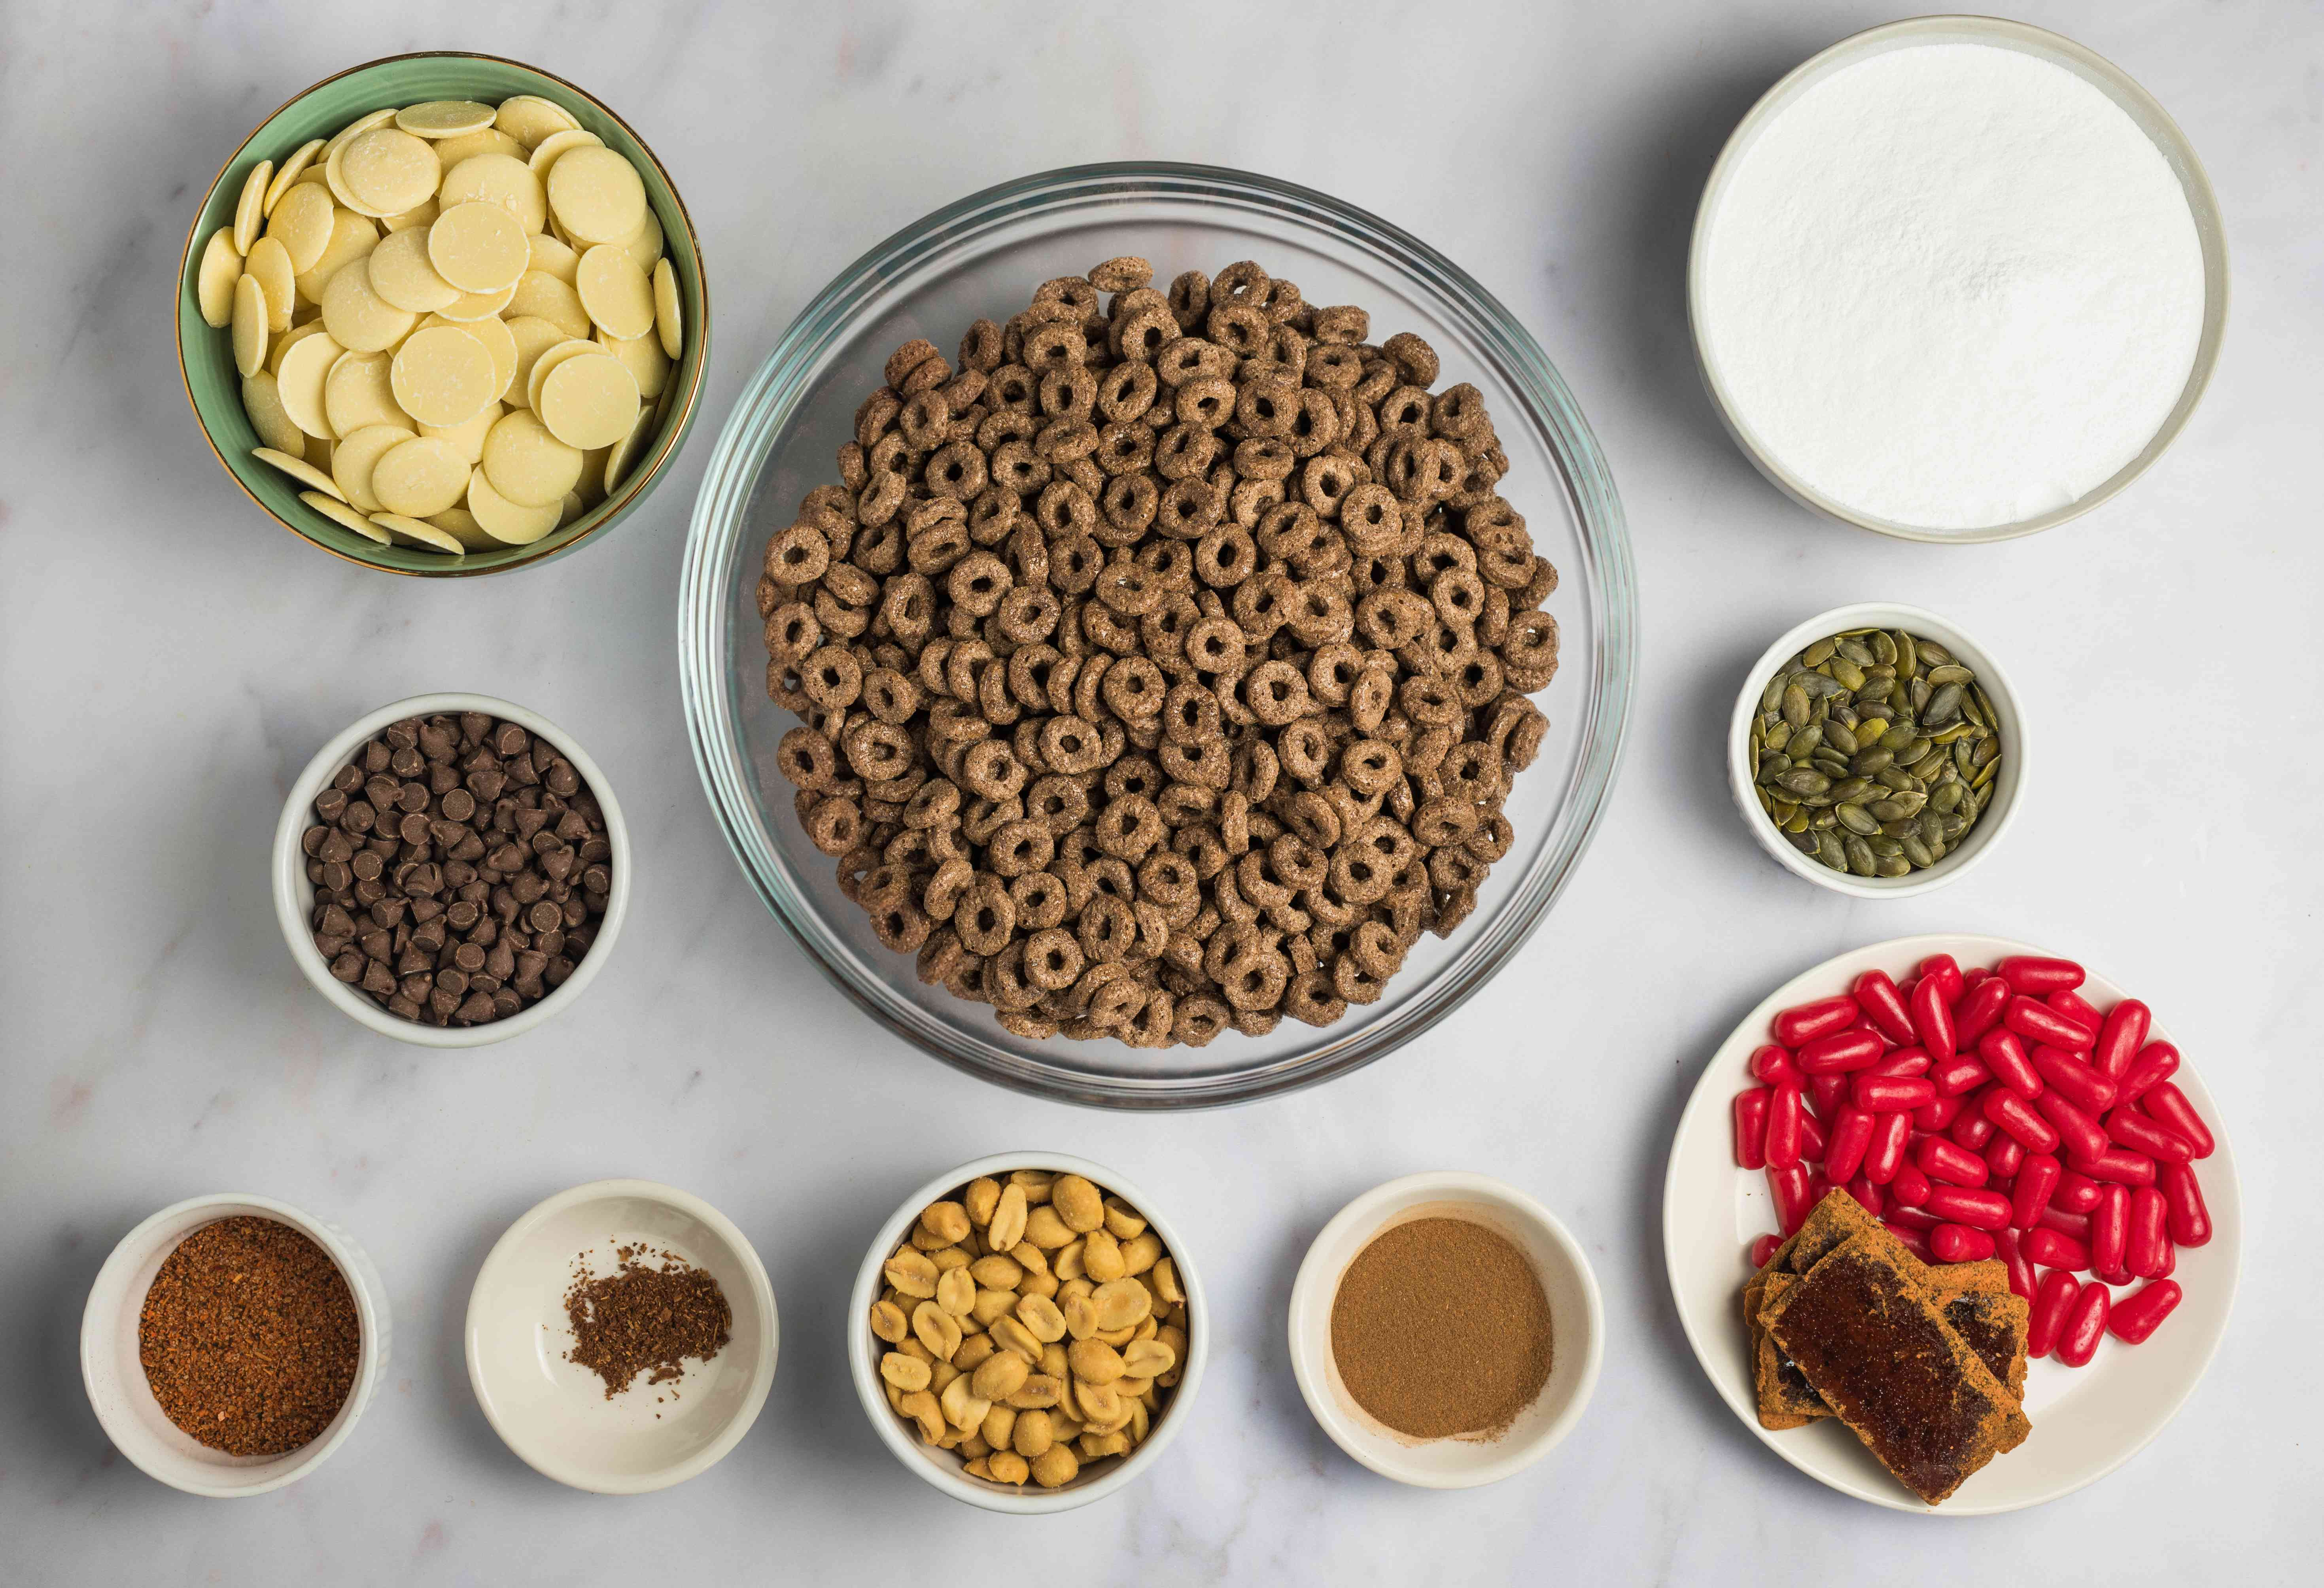 Ingredients for Mexican puppy chow